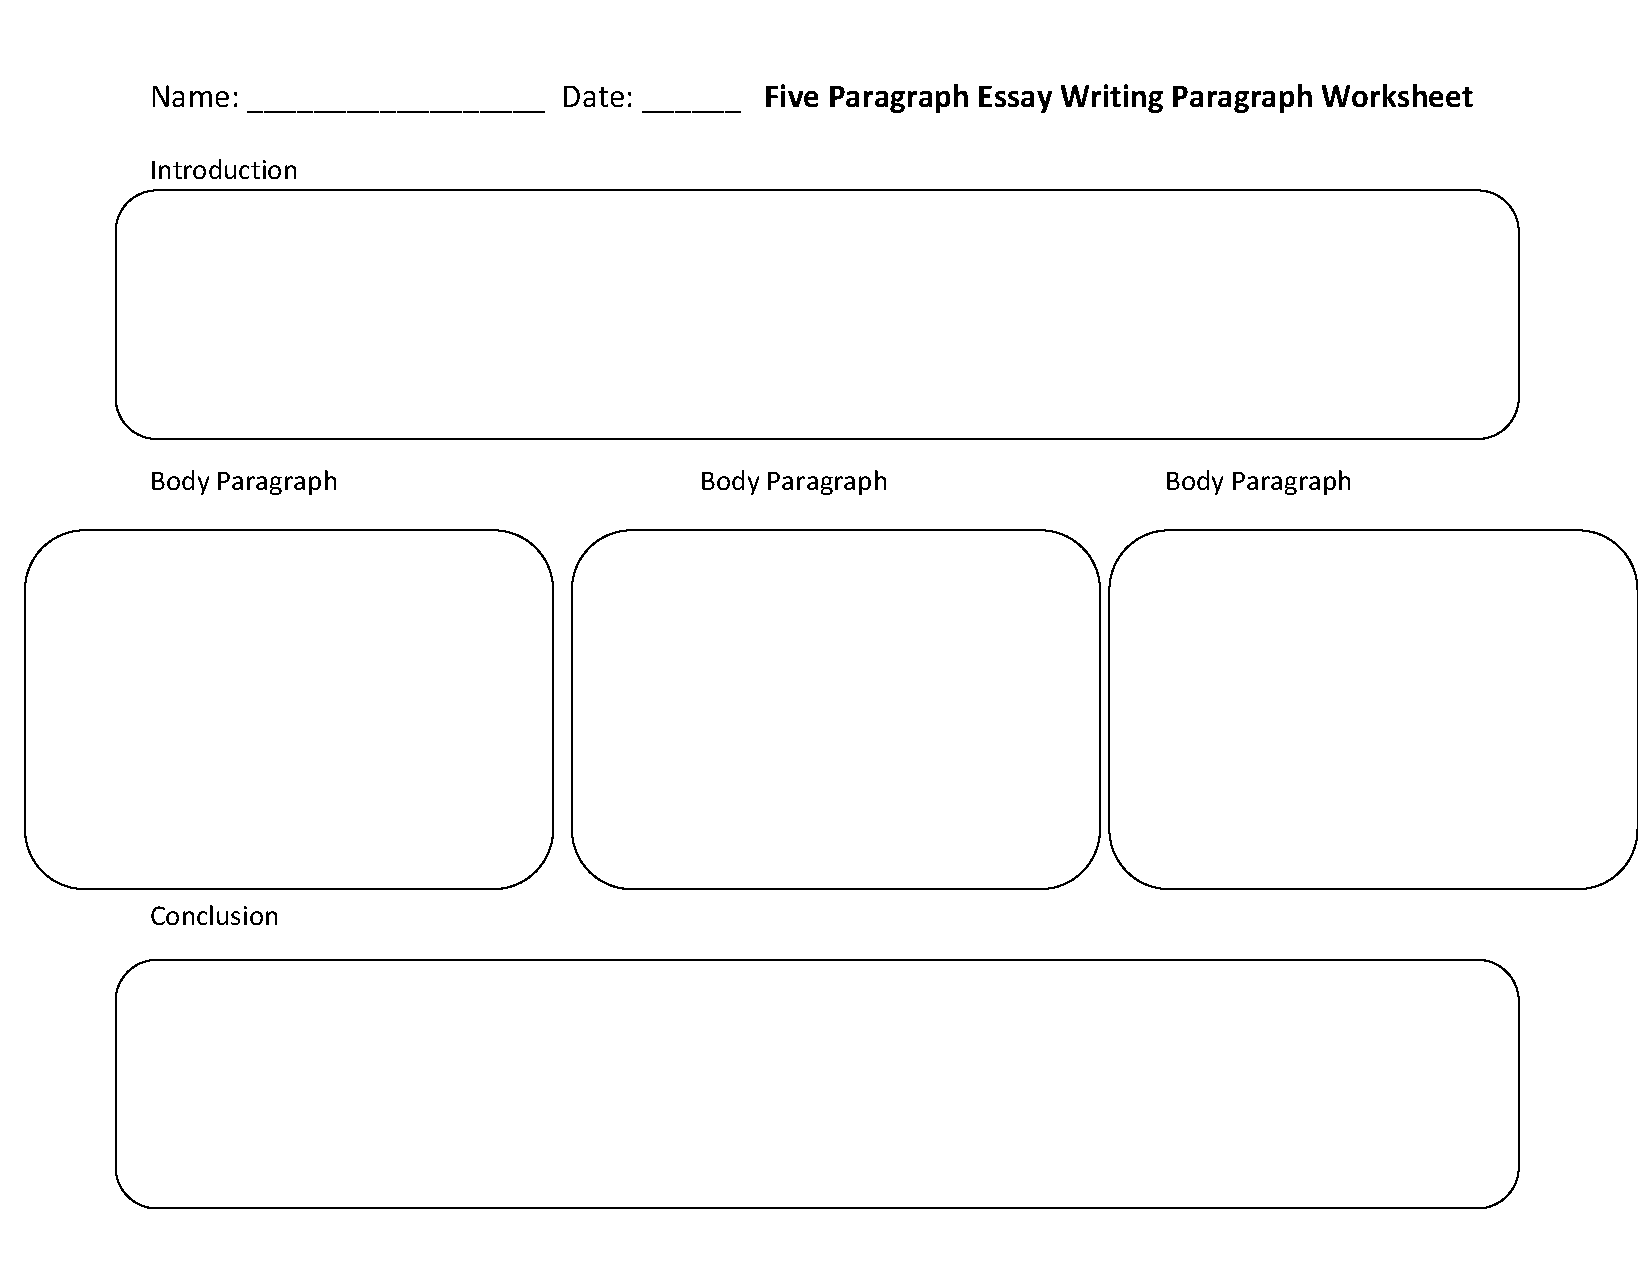 Worksheet Writing Paragraphs Worksheet writing worksheets paragraph five essay worksheets